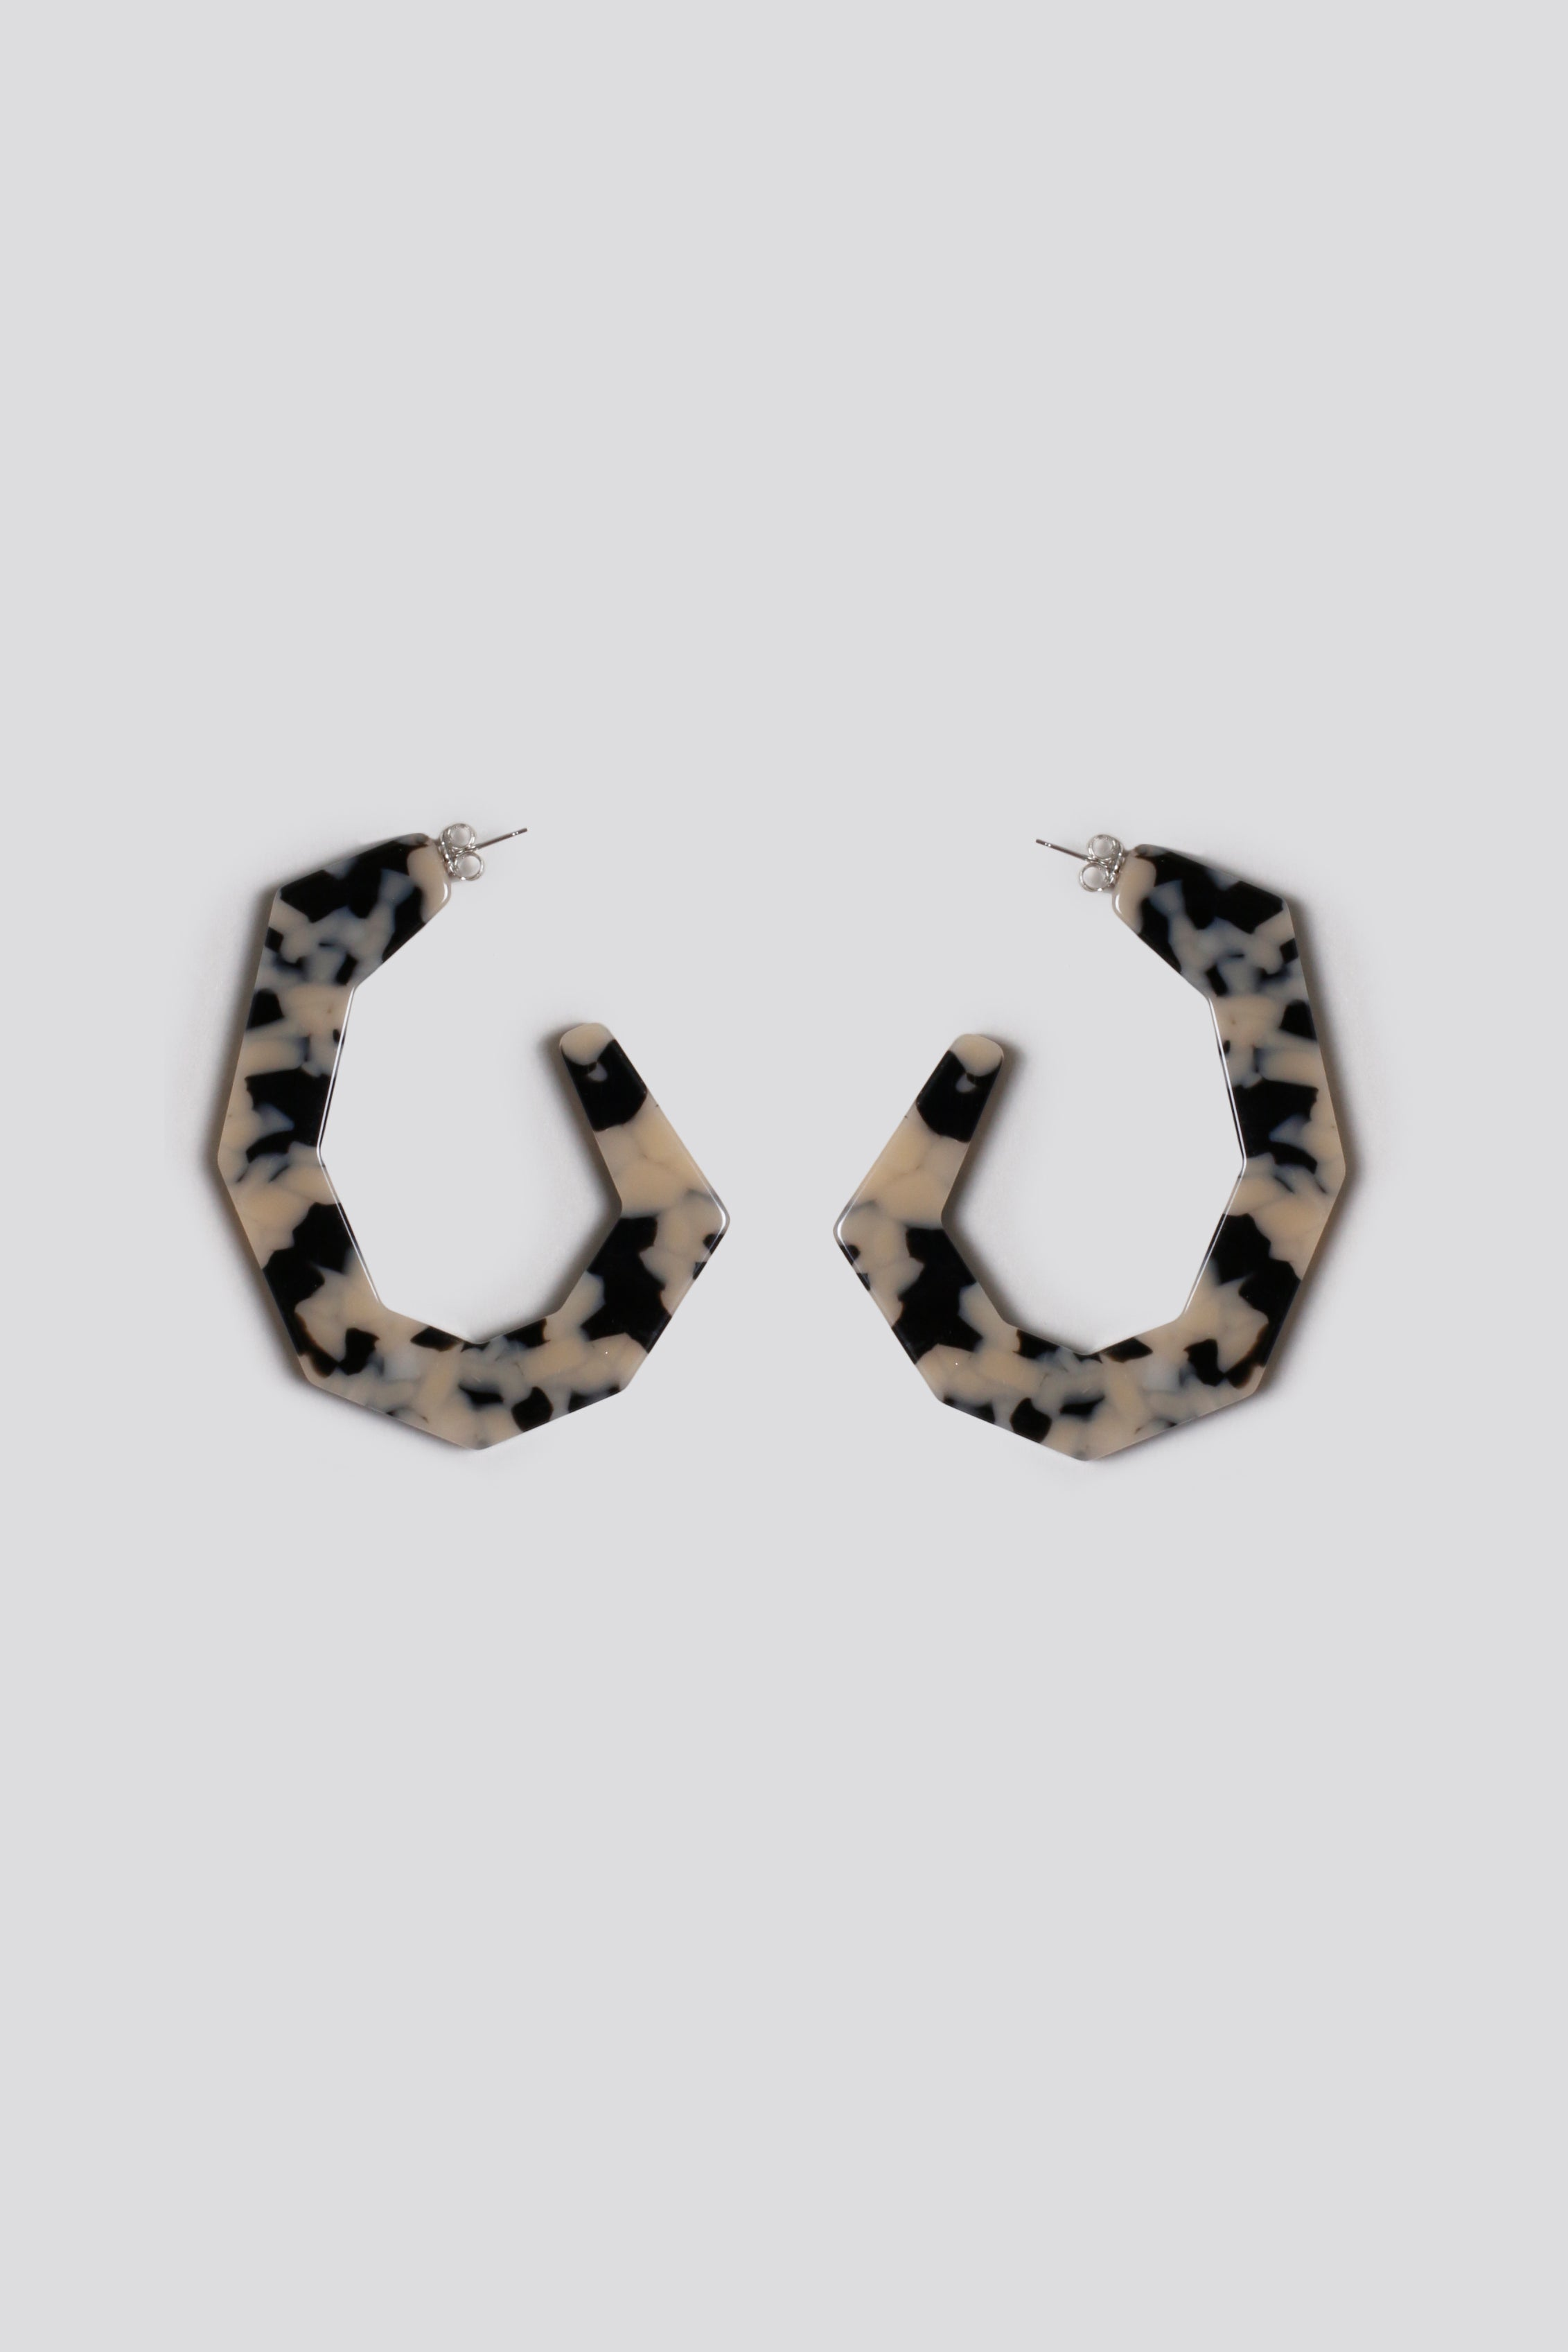 Factor earrings, dalmation